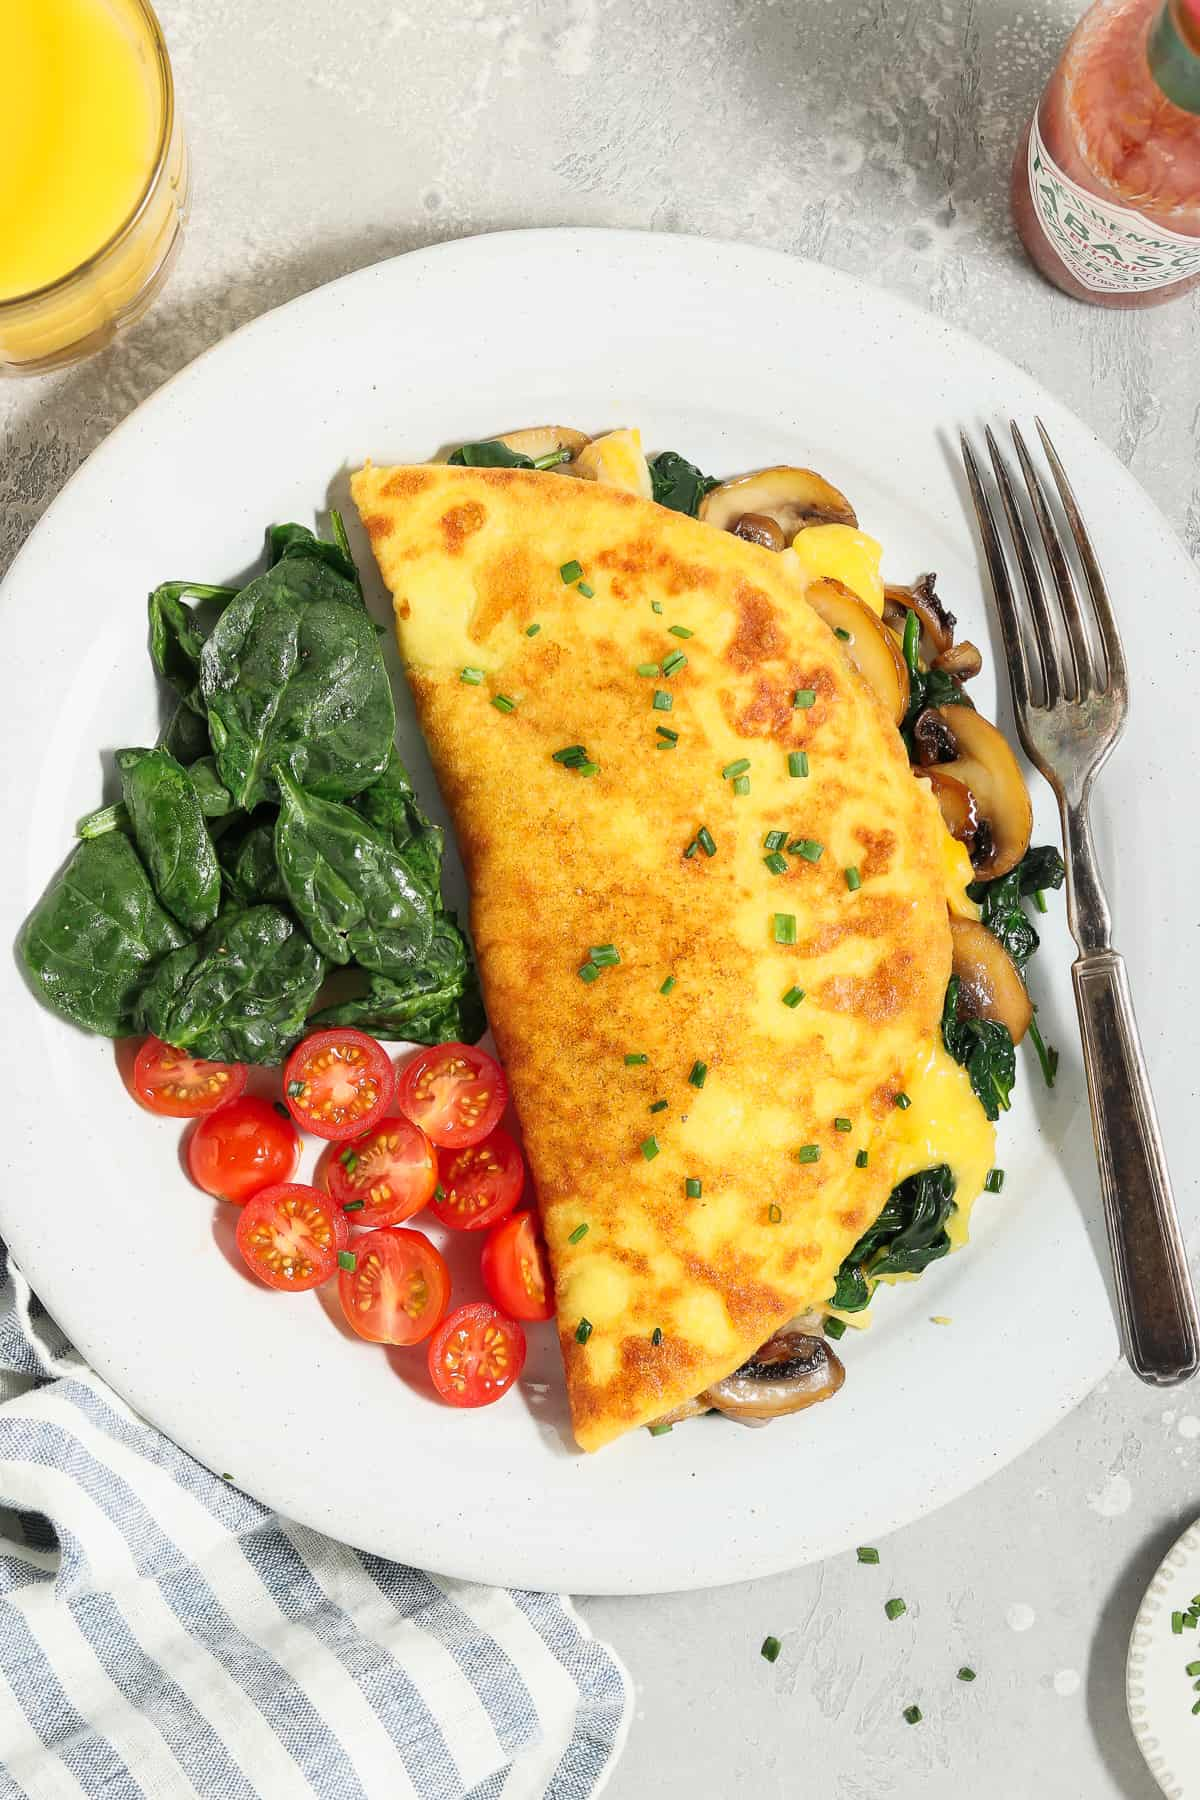 Overhead view of a JUST Egg omelette on a white plate with spinach and tomatoes on the side.